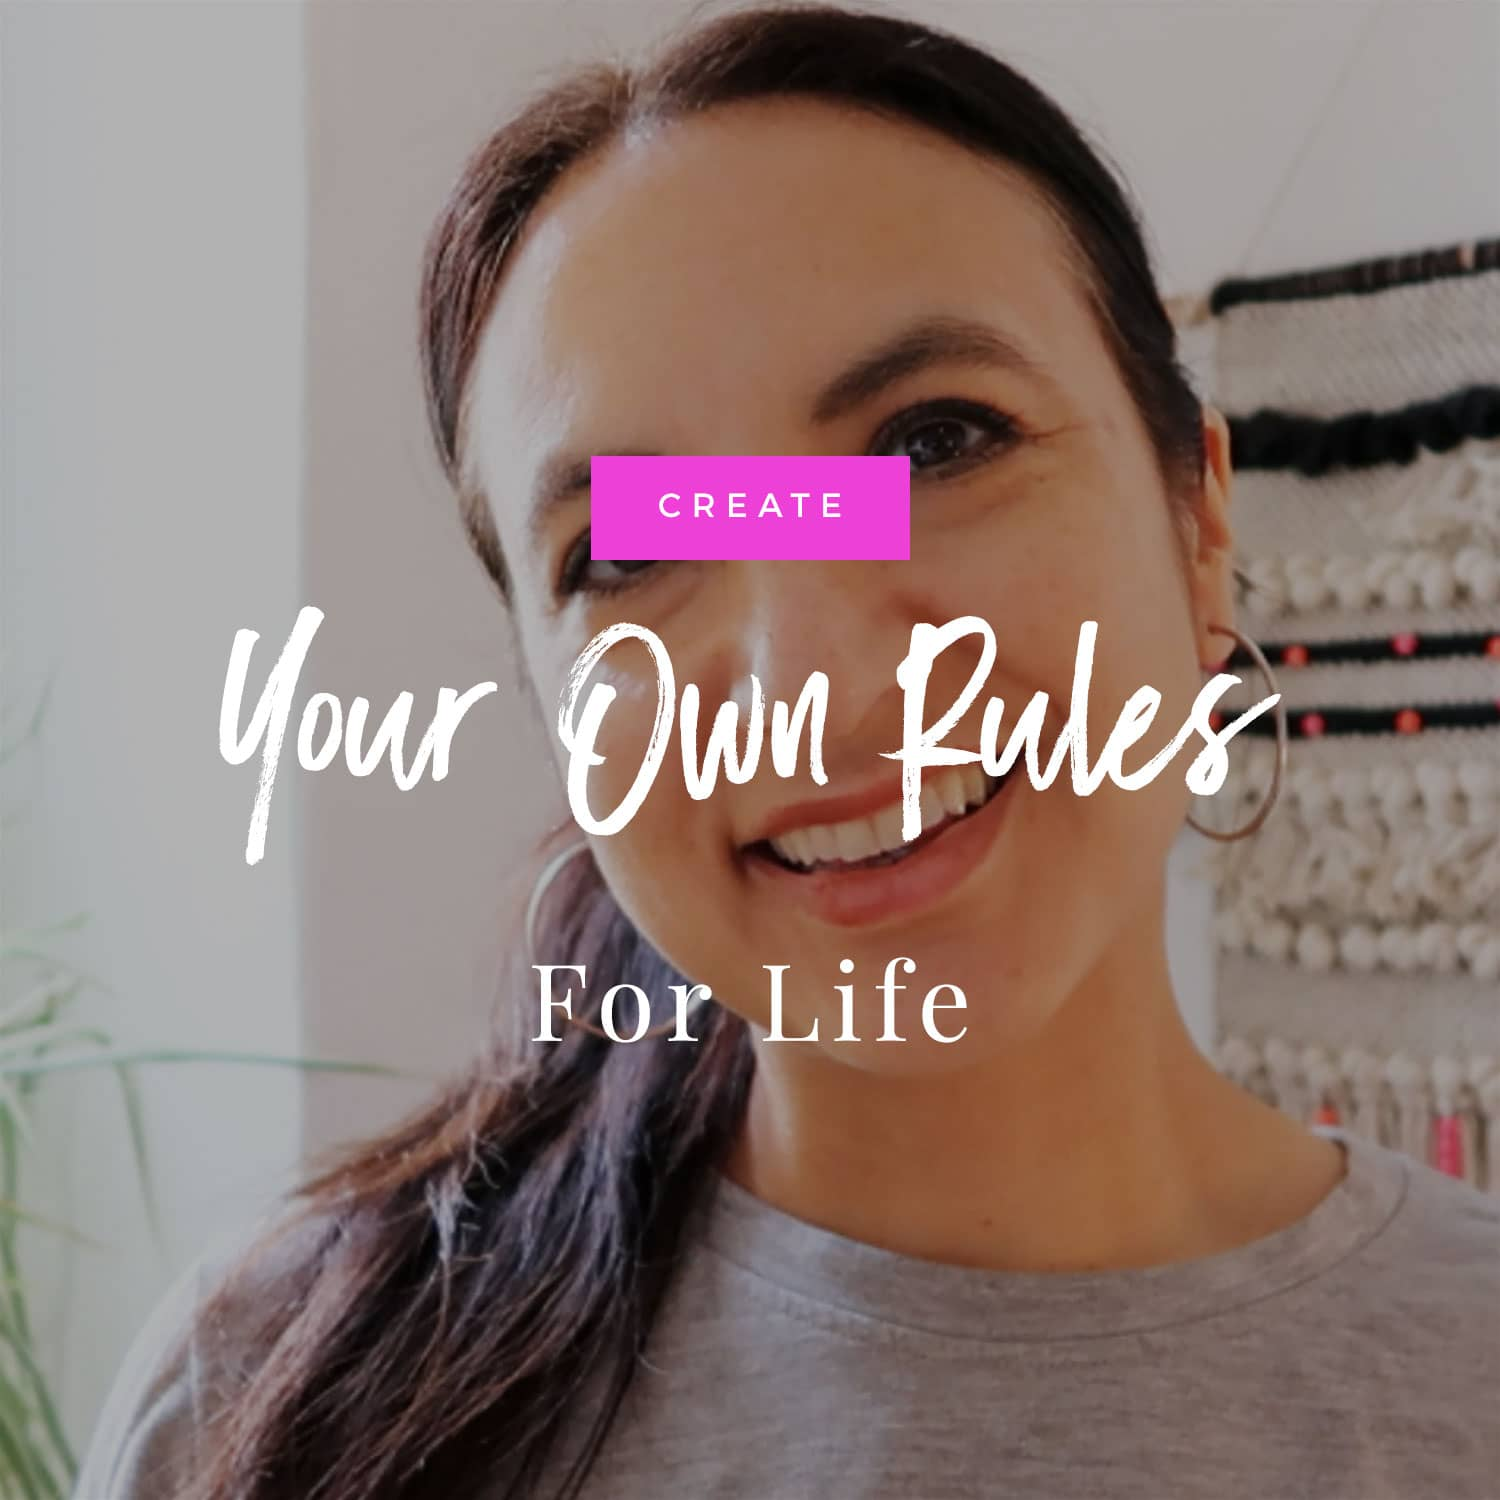 Create Your Own Rules For Life!